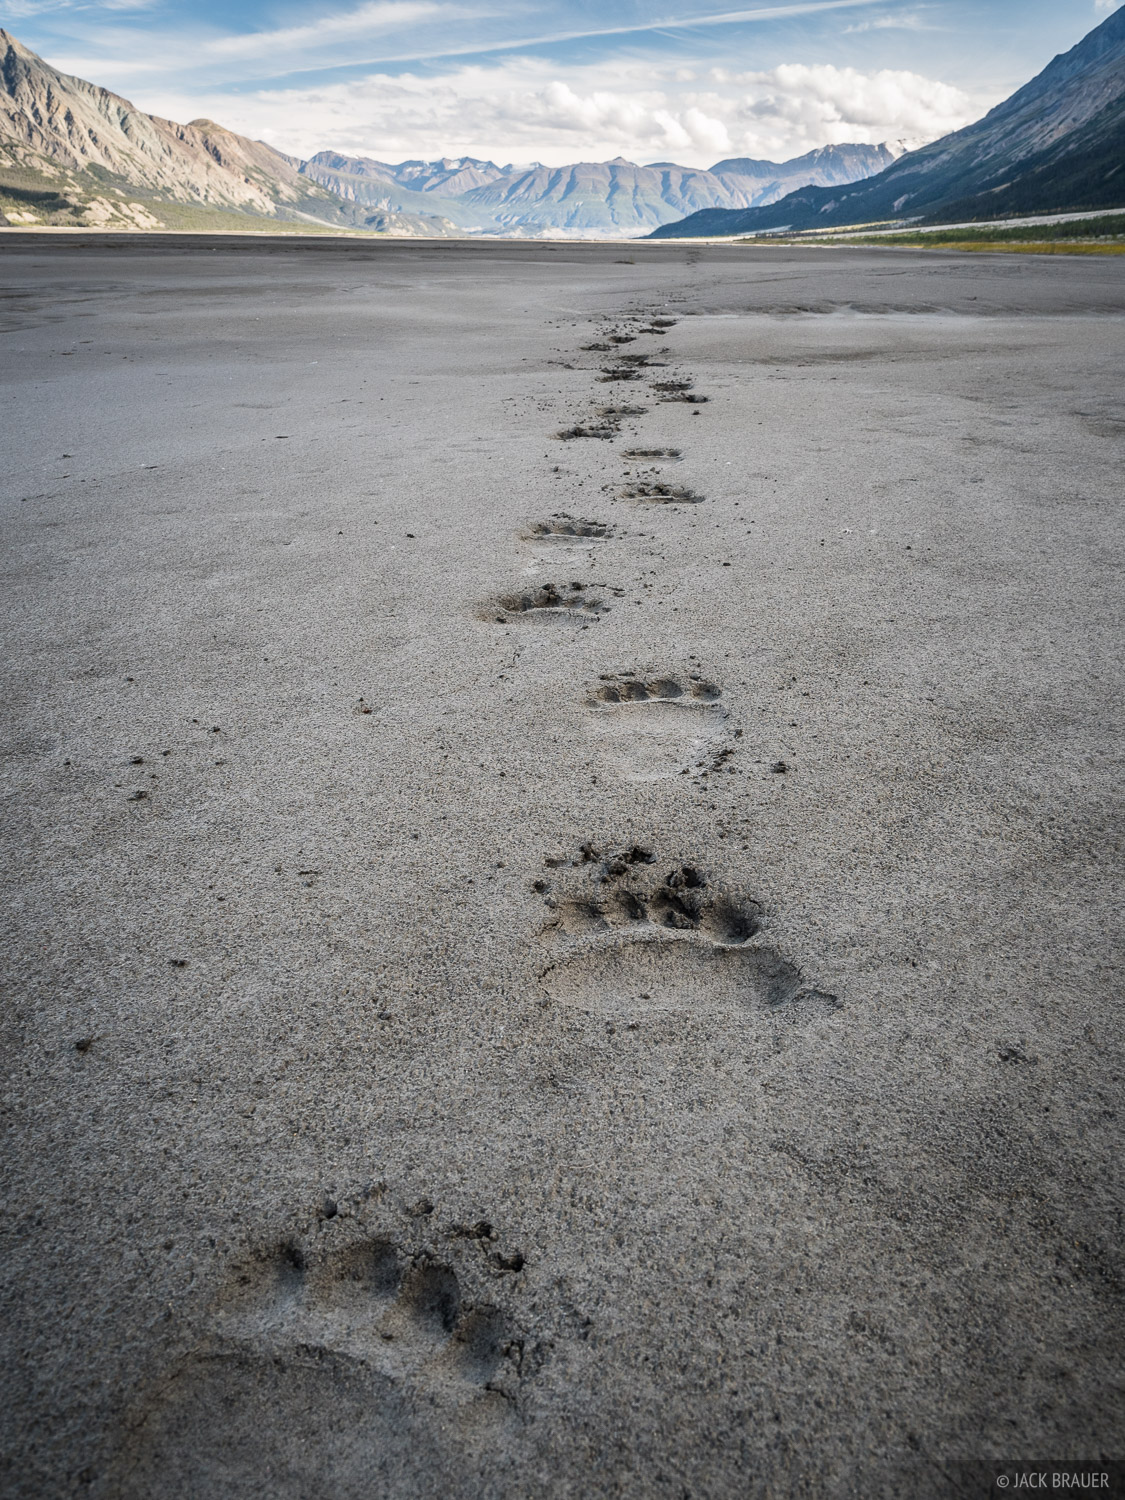 Canada, Kluane National Park, Slims River, Yukon, bear, photo